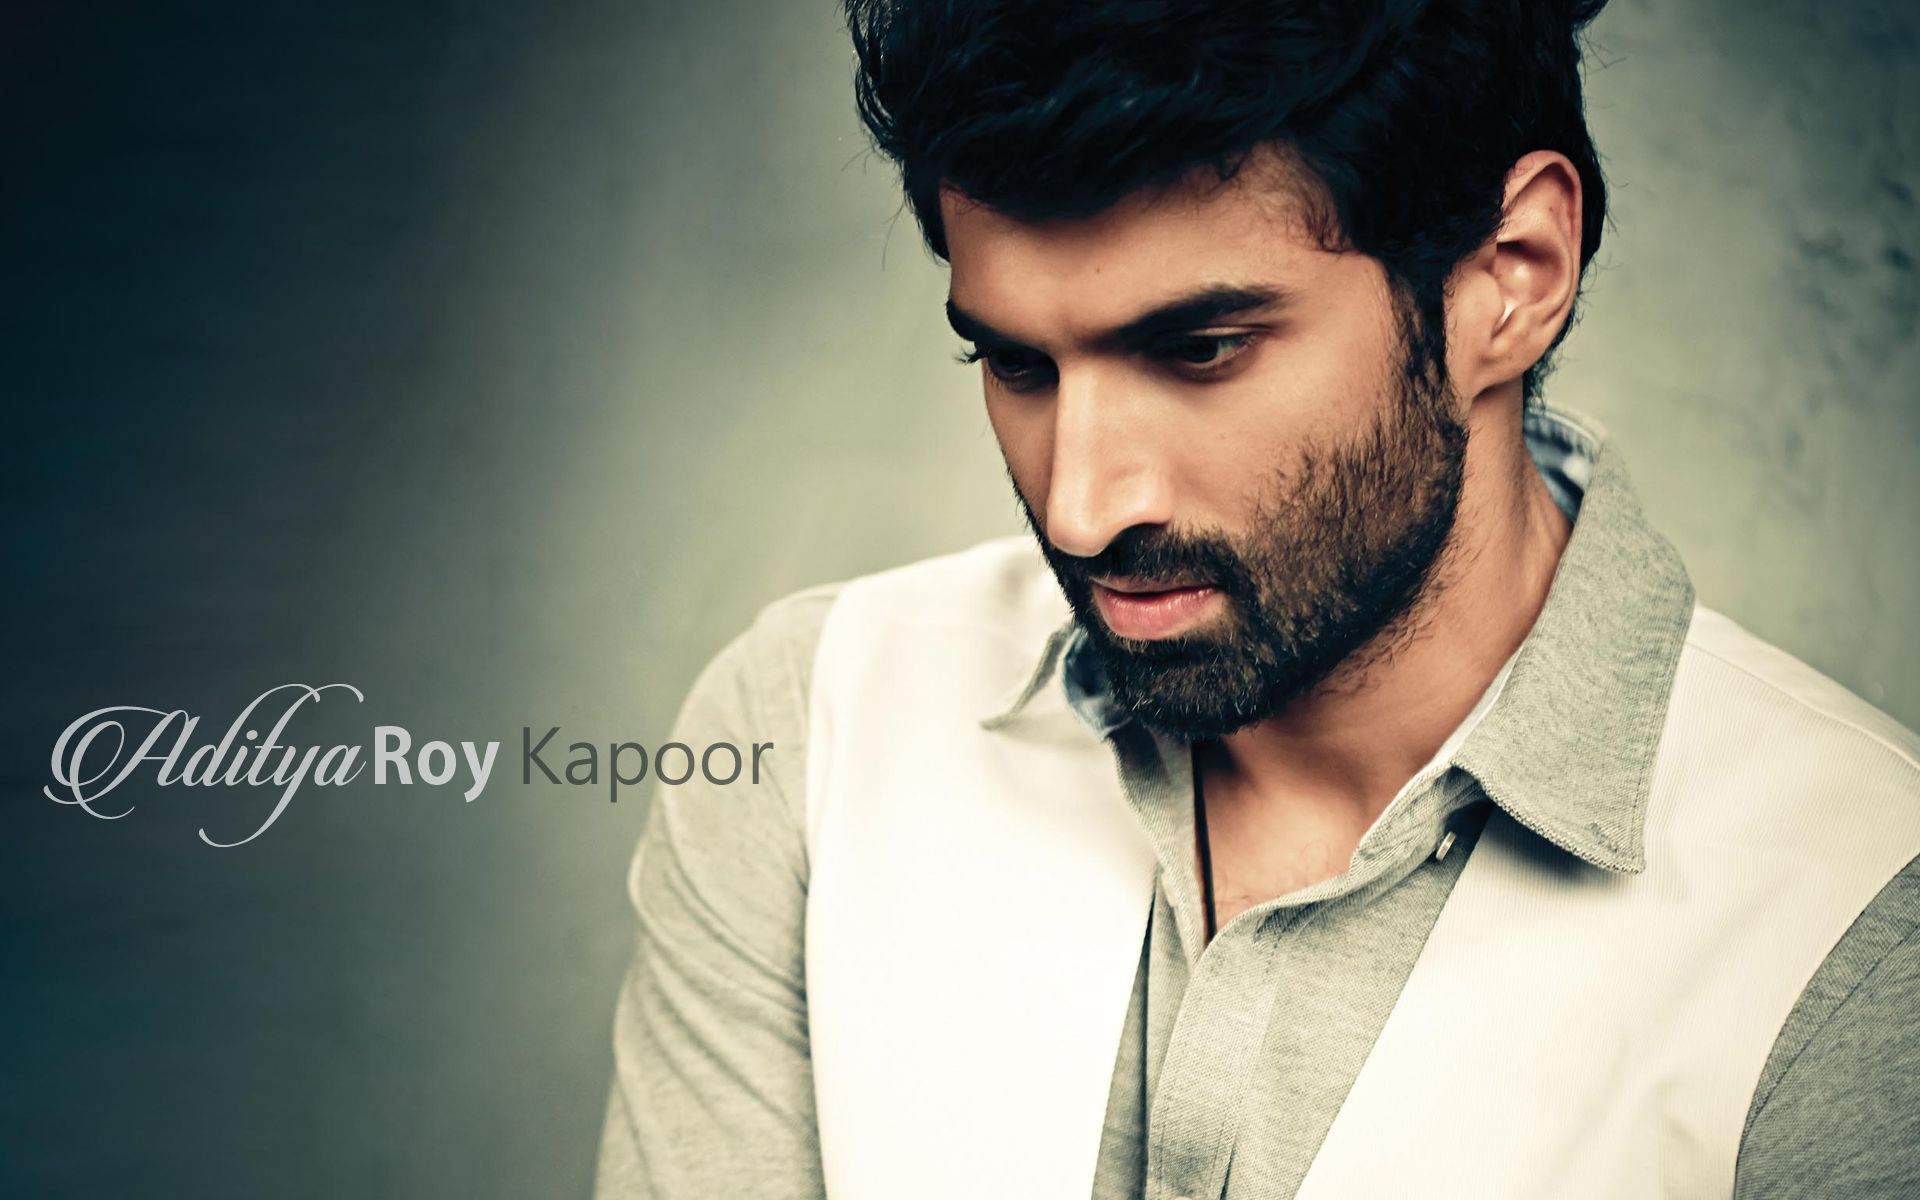 Aditya Roy Kapoor Hd Wallpaper 1080p Free